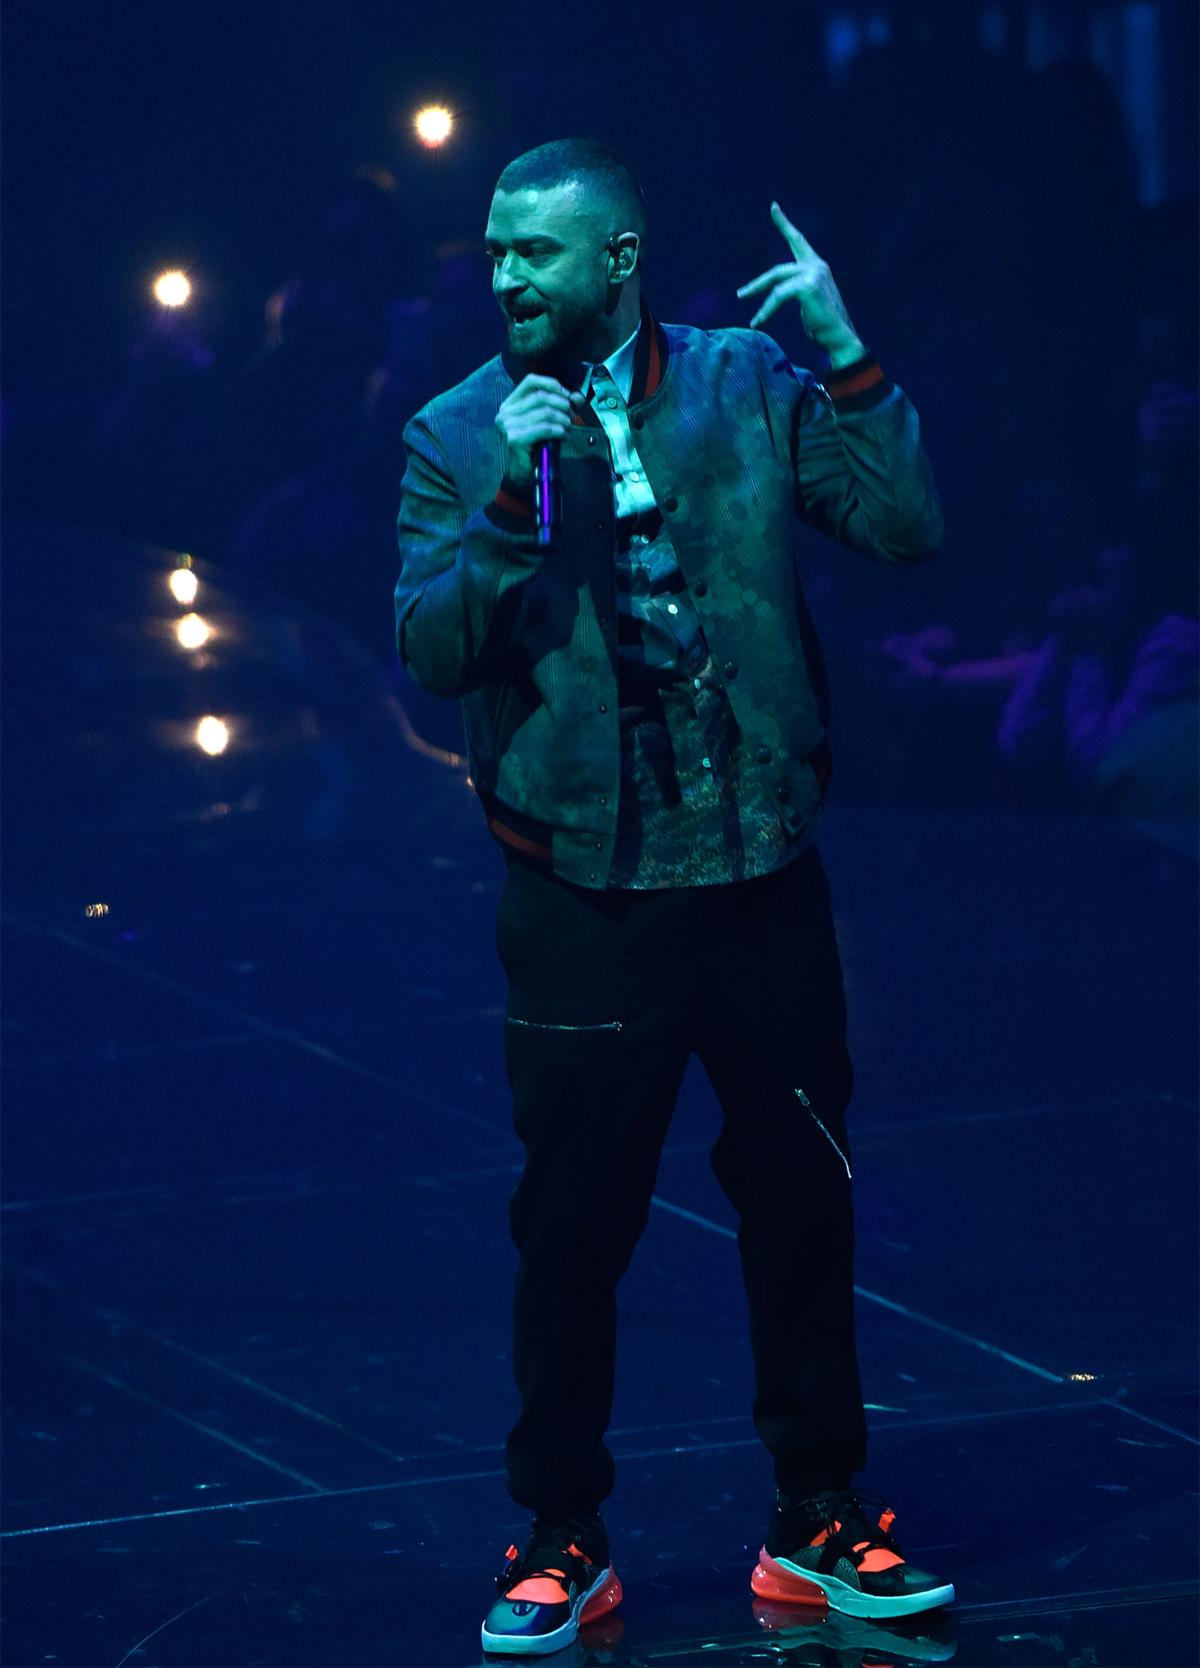 Justin Timberlake in tour Man of the Woods (Photo by Kevin Mazur/Getty Images for Live Nation)